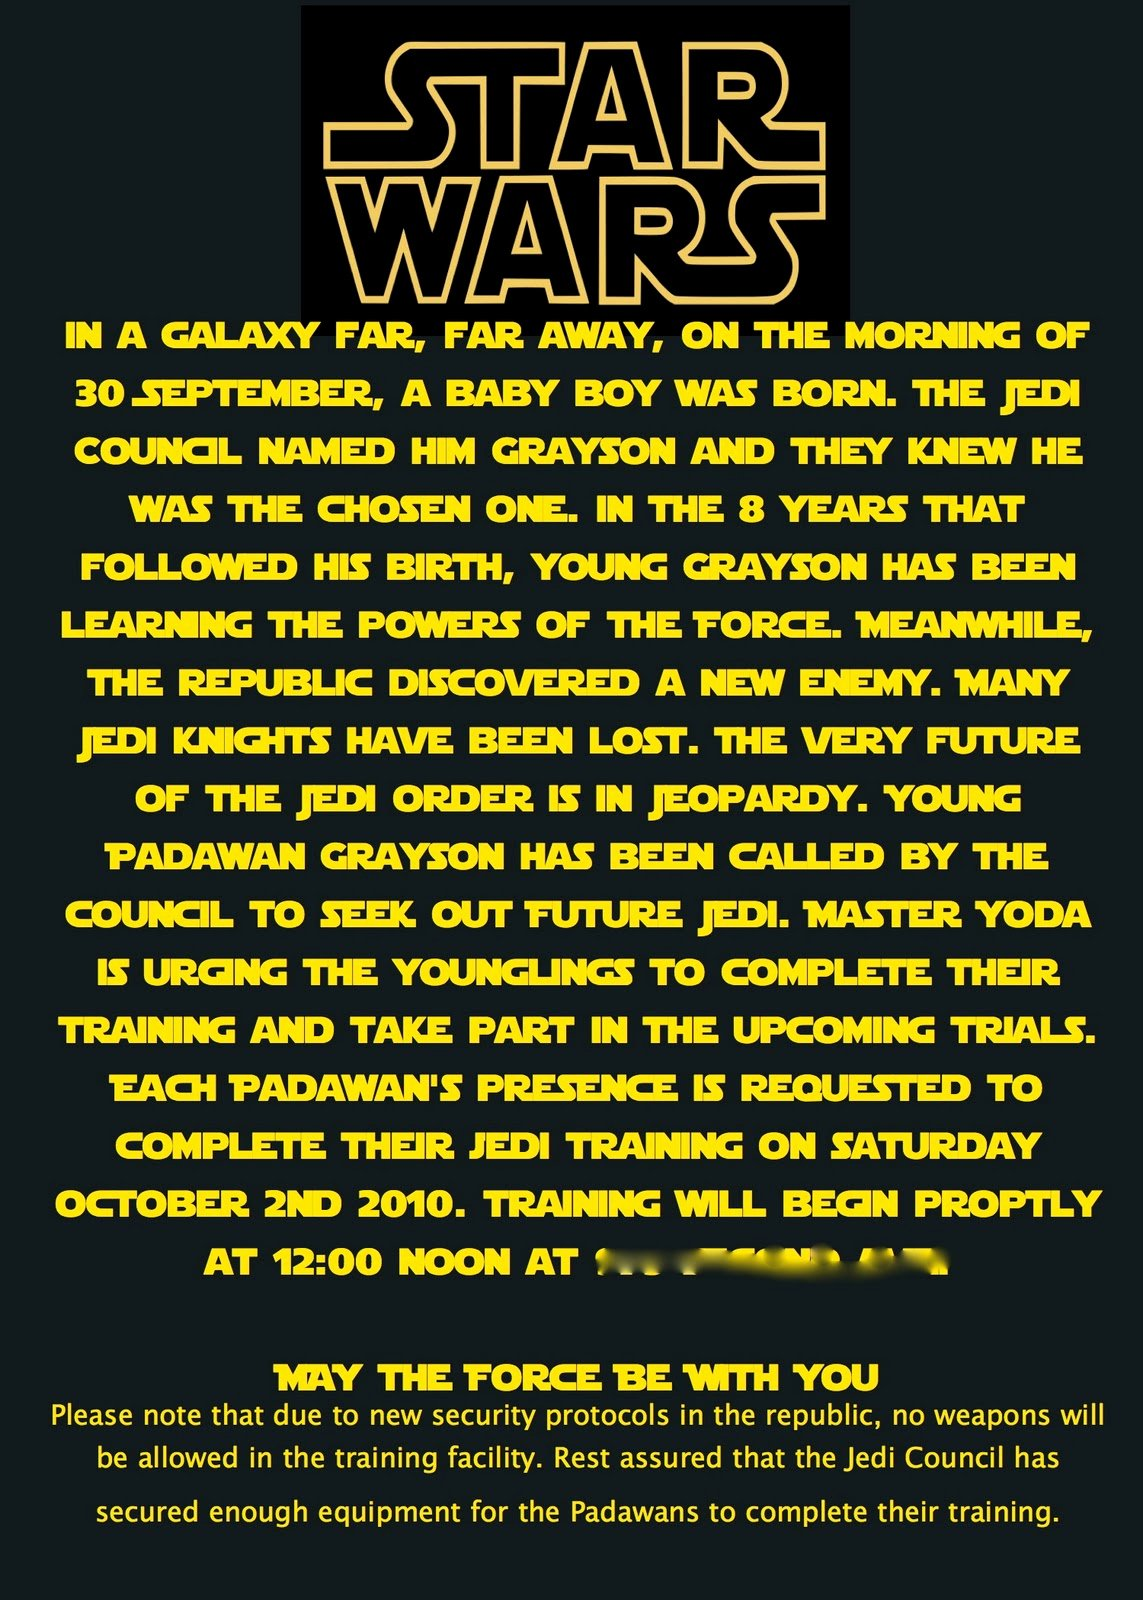 Star Wars Birthday Party Invitation New at Second Street Star Wars Party What I Did